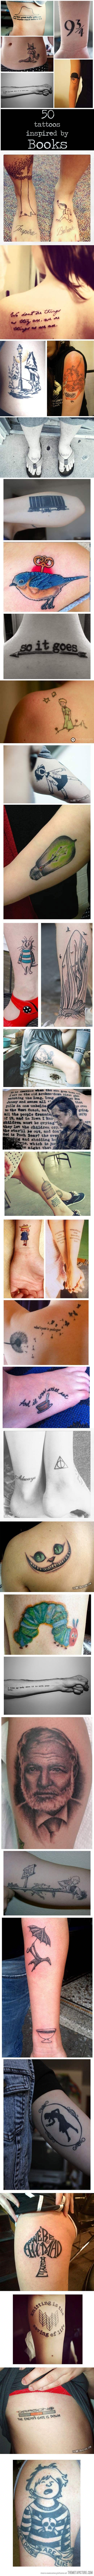 Tattoos Inspired By Books.  I need to think of a tattoo to represent Lonesome Dove by Larry McMurtry.